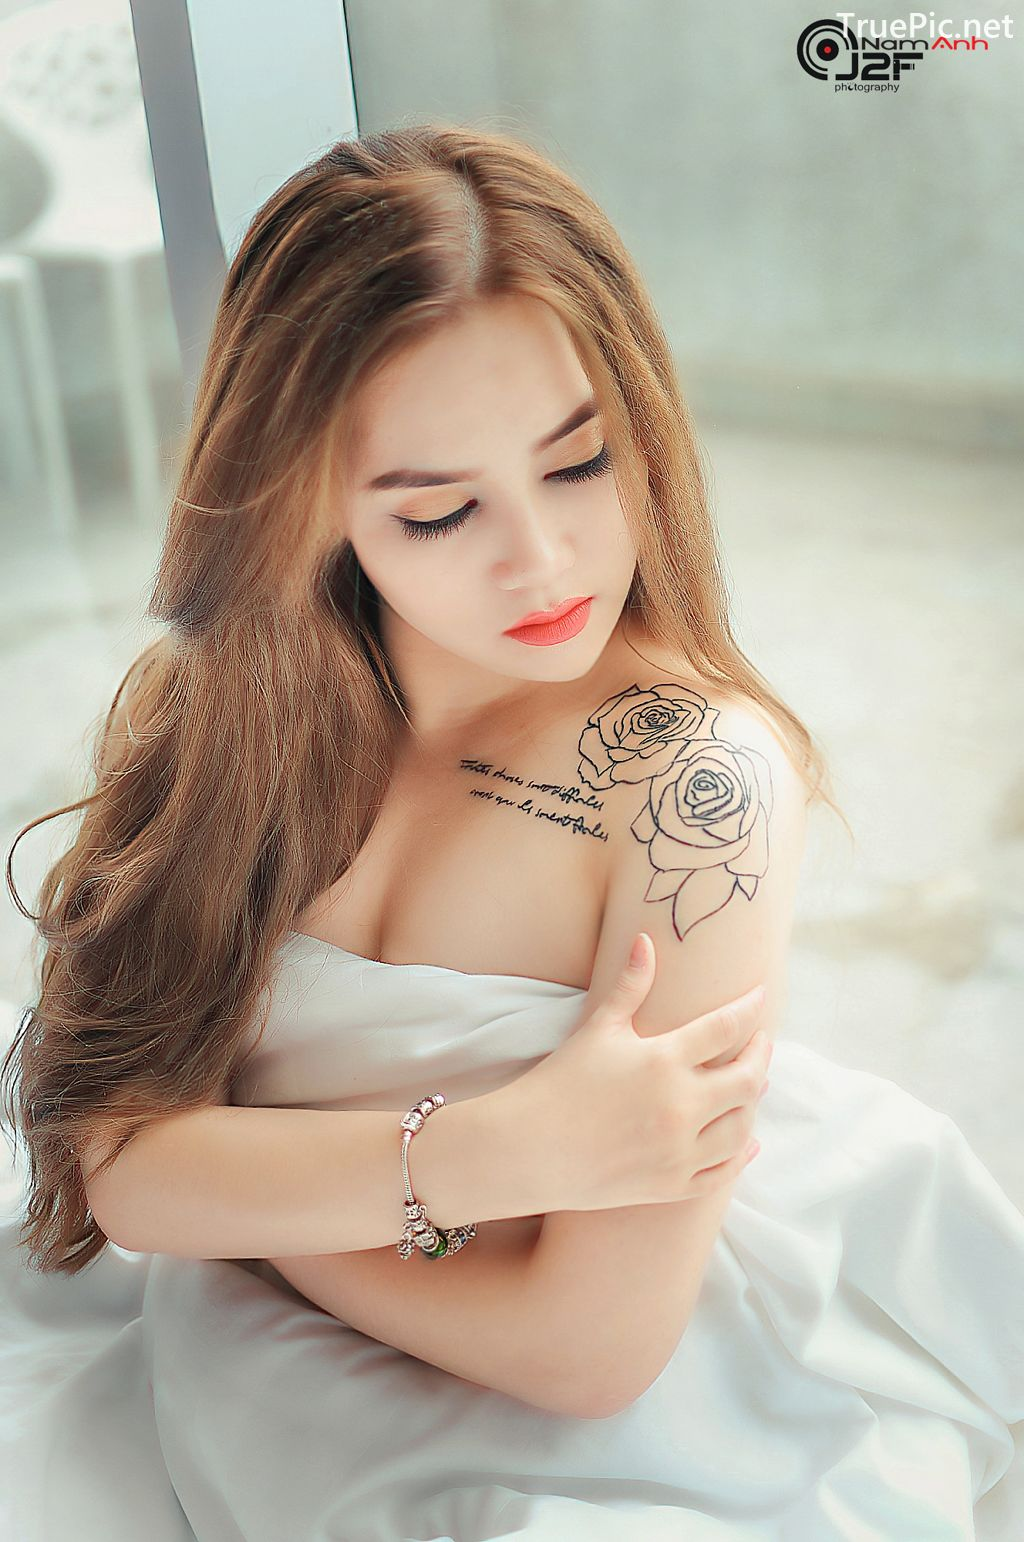 Image-Vietnamese-Model-Sexy-Beauty-of-Beautiful-Girls-Taken-by-NamAnh-Photography-1-TruePic.net- Picture-3